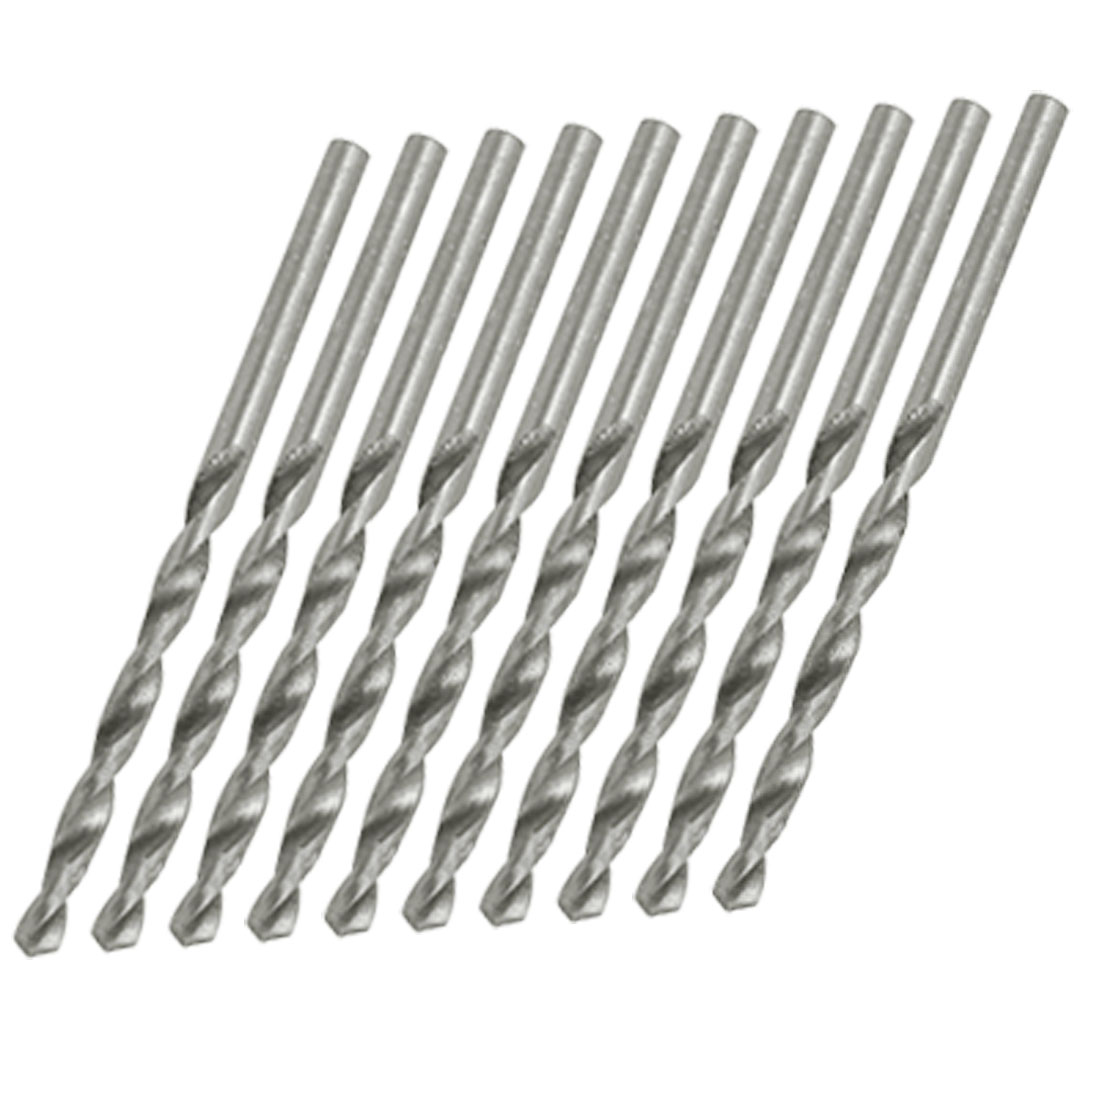 10PCS 3mm Diameter Straight Shank Spiral Twist Drill Bits